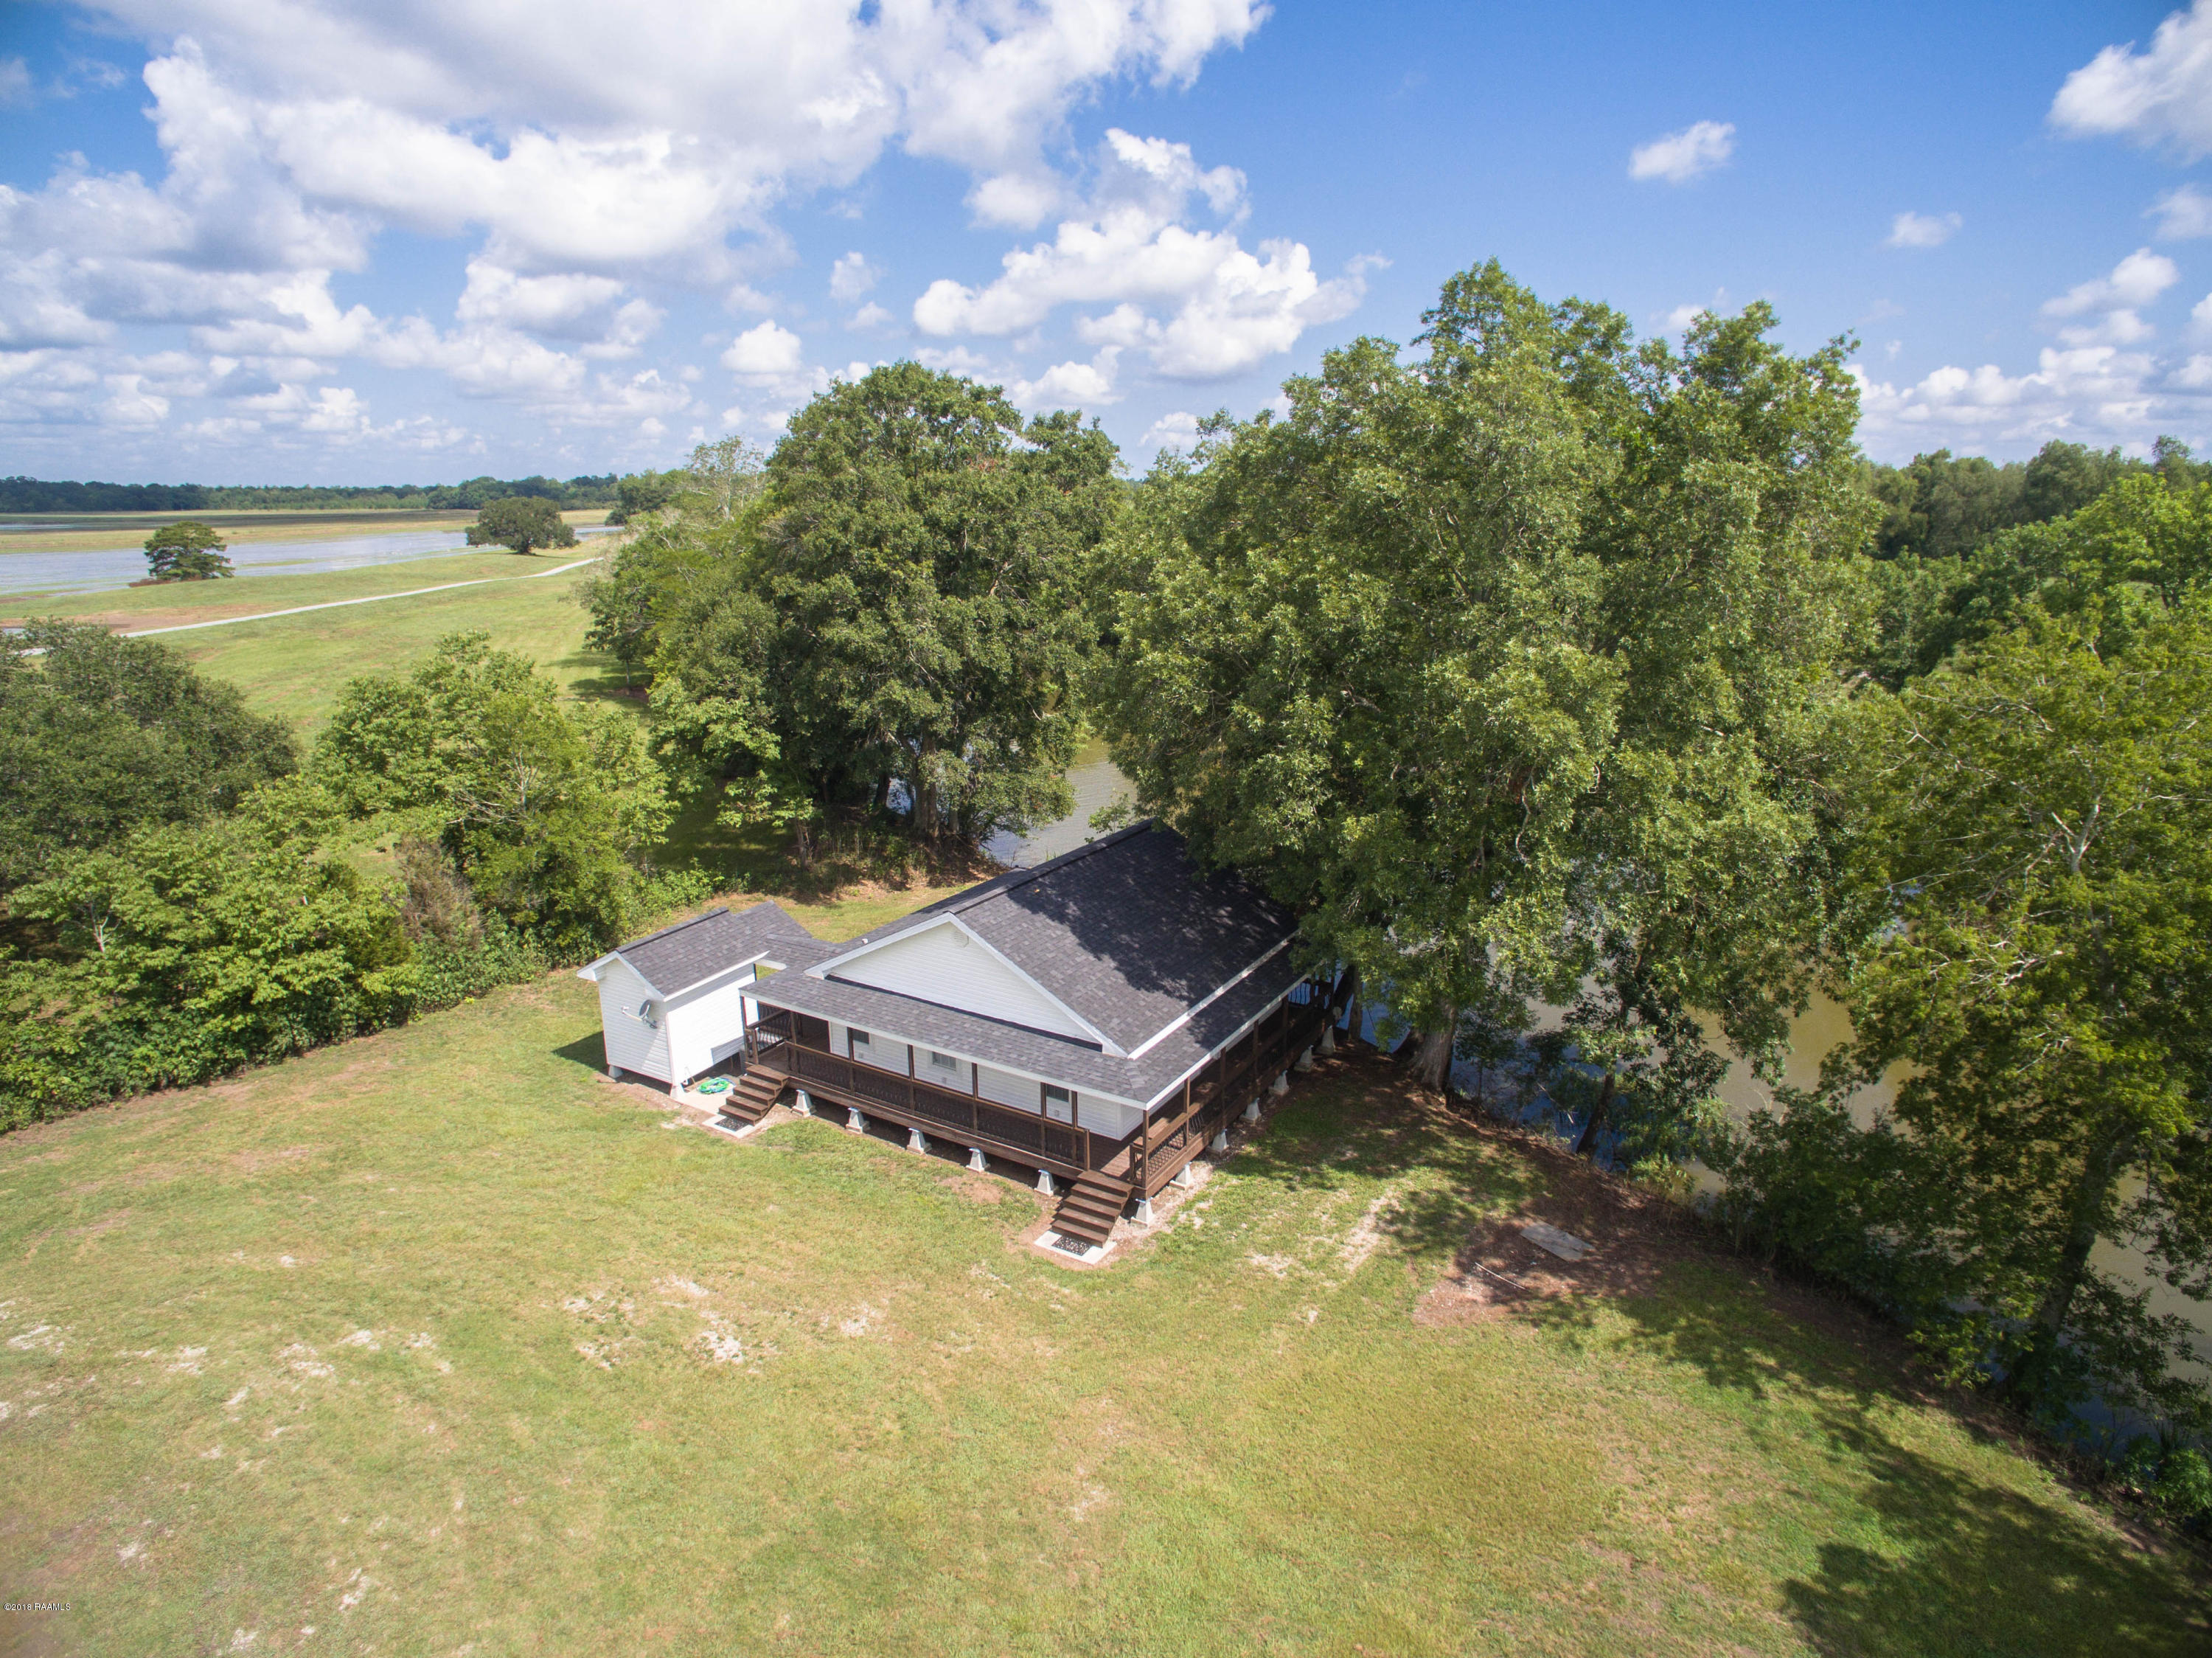 1185 Wade O Martin Road, St. Martinville, LA 70582 Photo #5